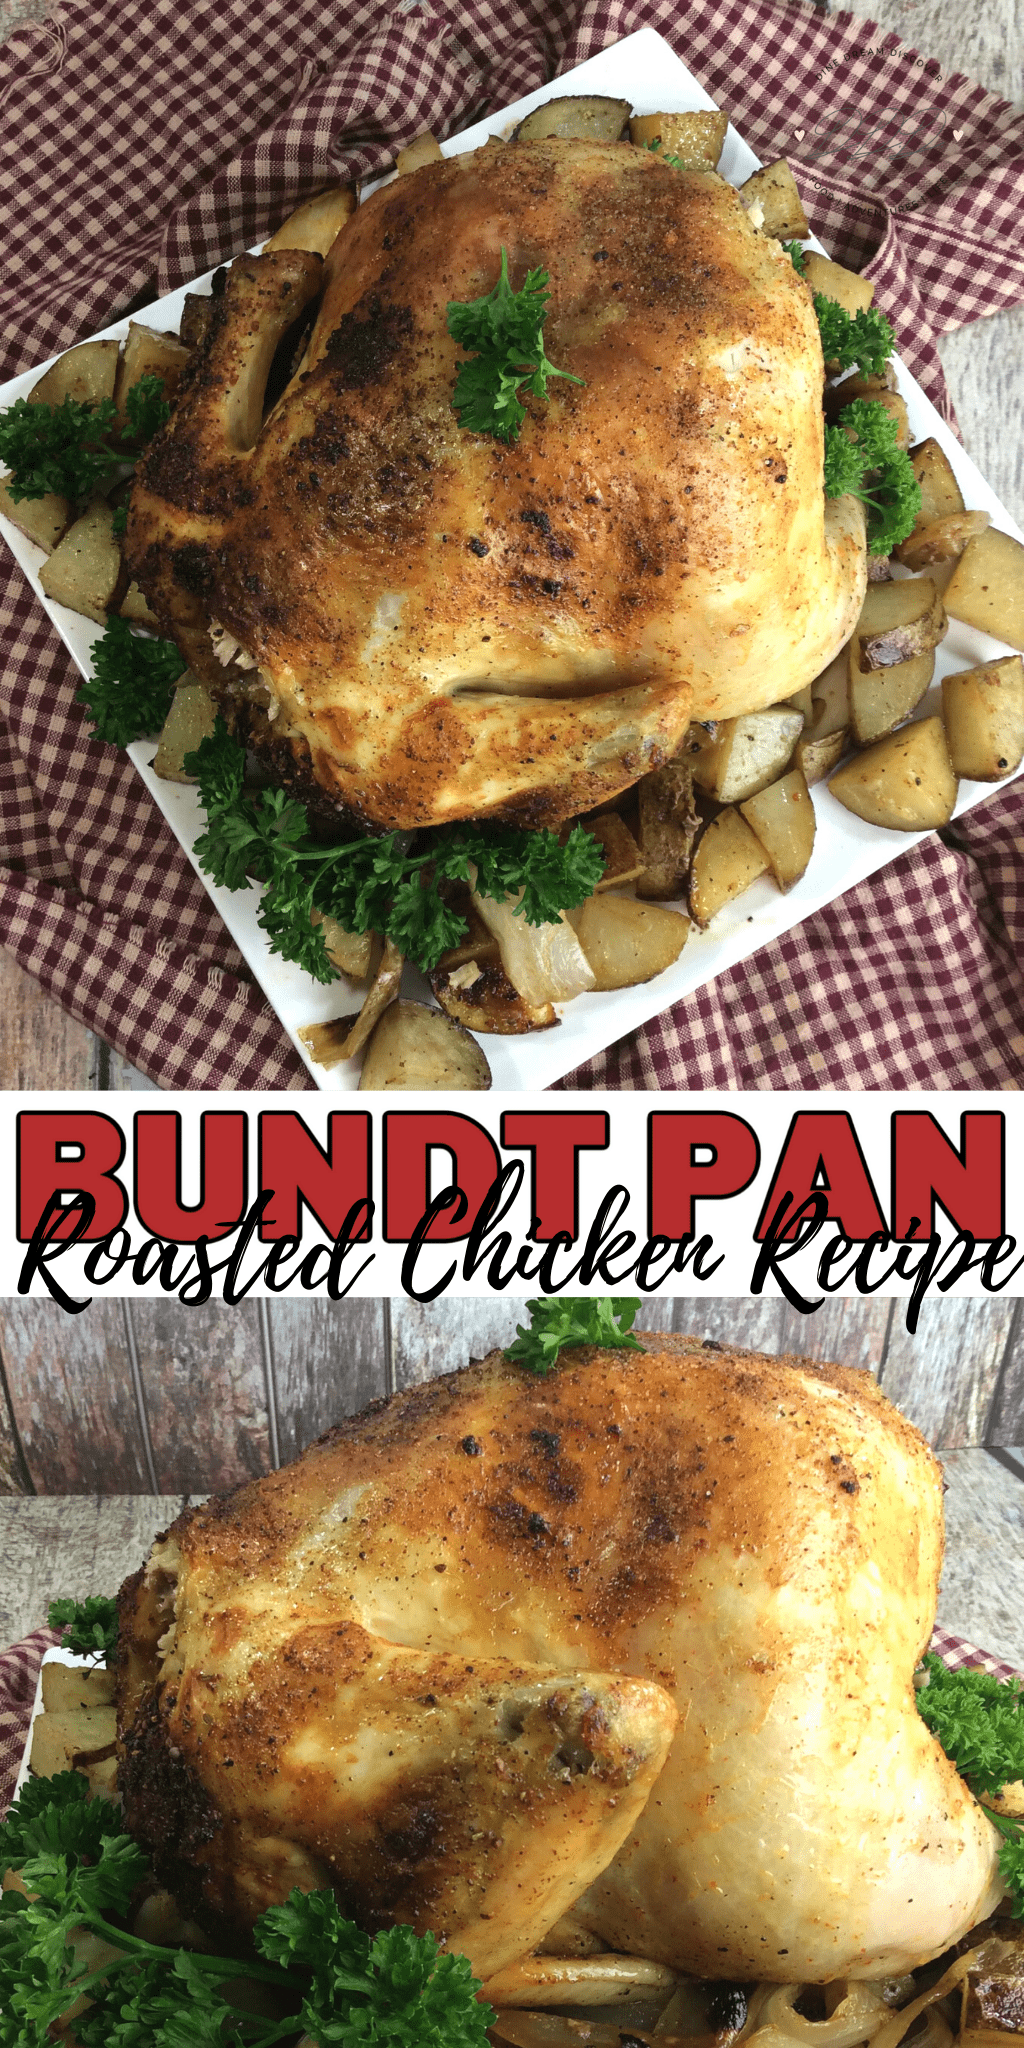 tbsp bundt pan roasted chicken and vegetables